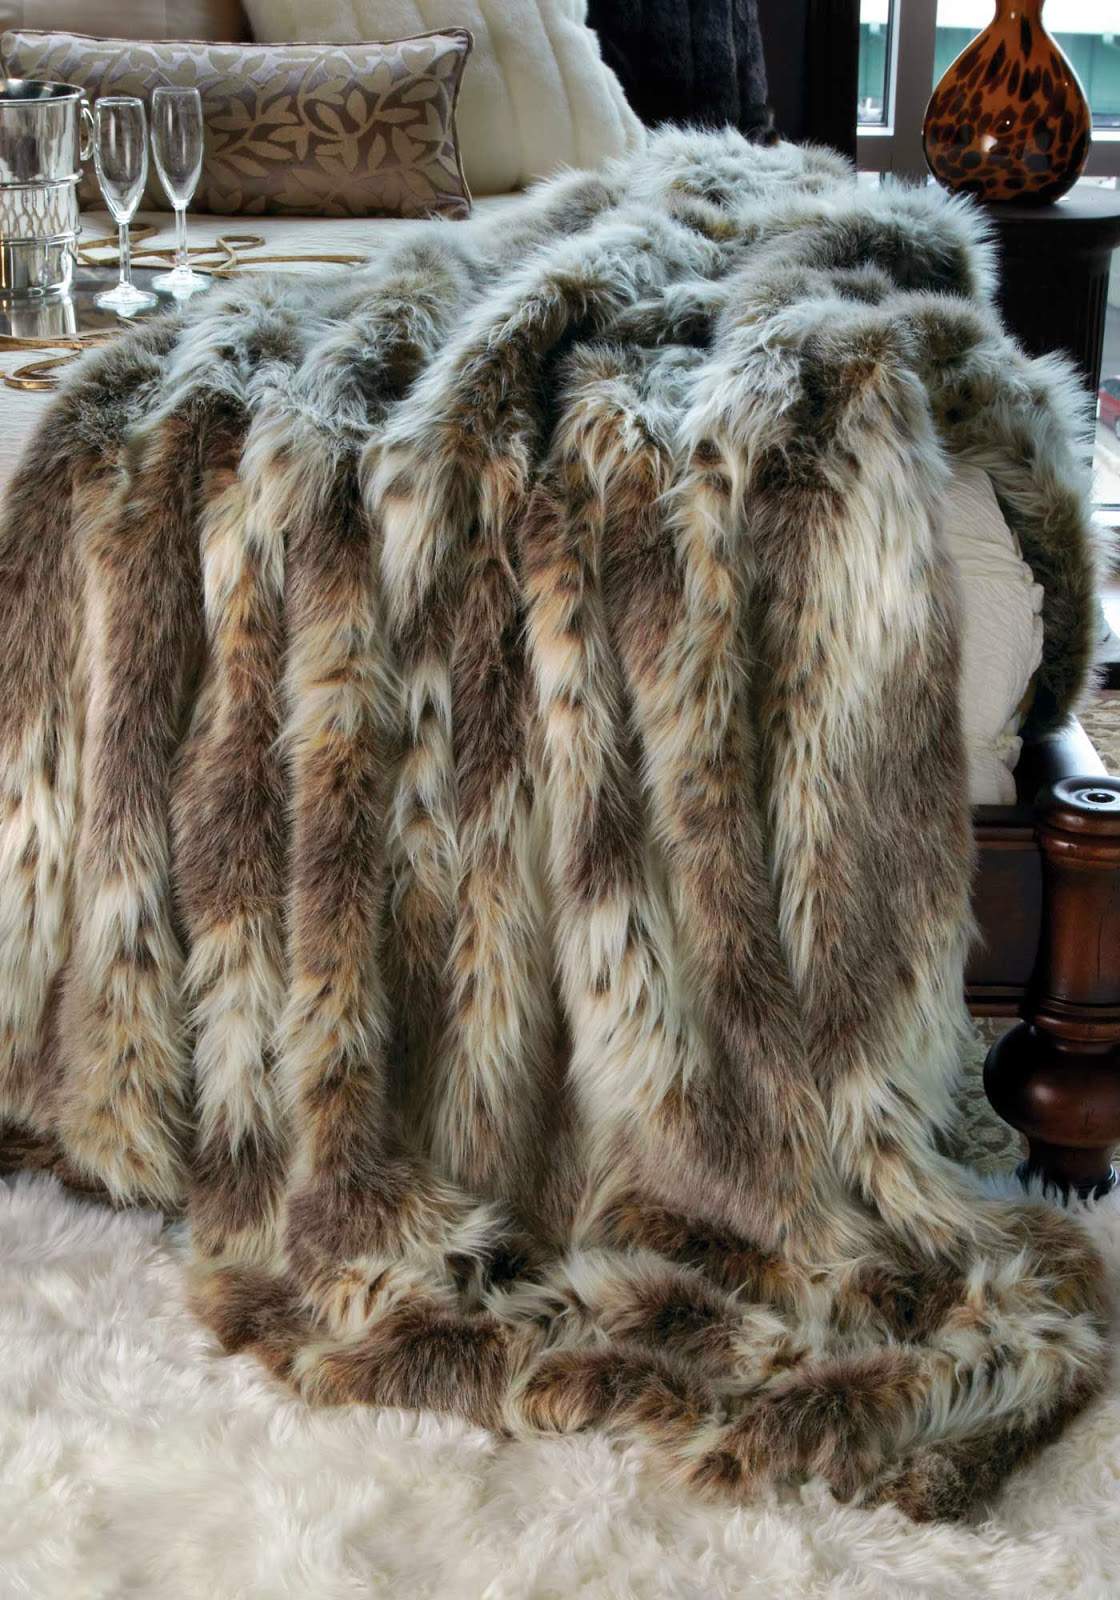 Ikea Faux Sheepskin Rug FRESH + TWIST : Decorating with Sheepskin & Faux Fur ...